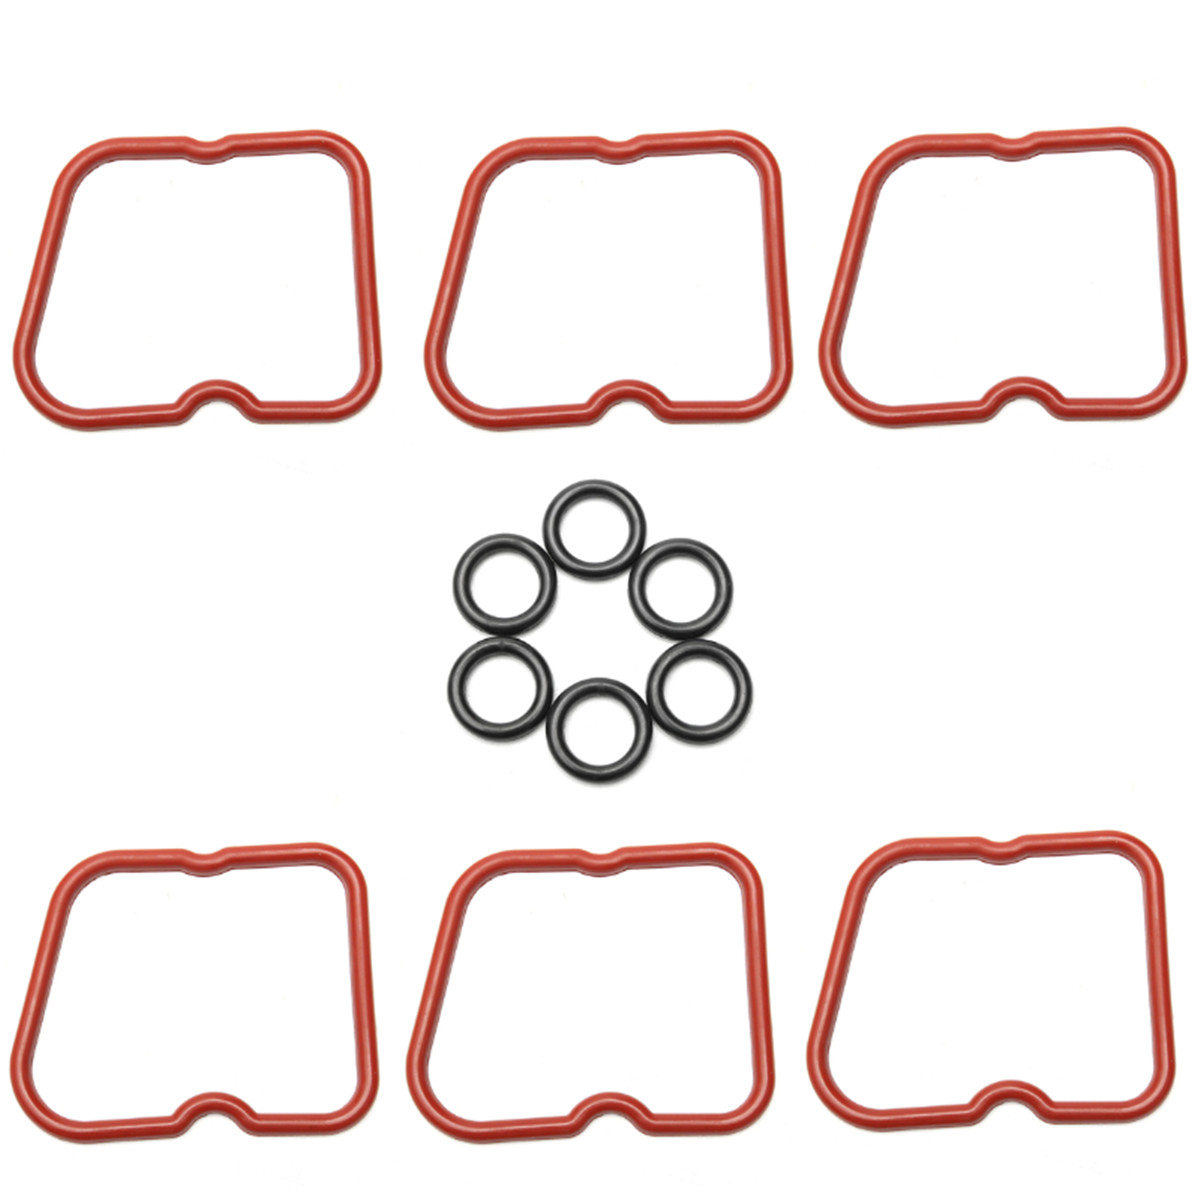 Set Of 6 Valve Cover Gaskets 3902666 3910824 For Dodge Cummins 12 V C180 Mopar Fuse Relay Box 59l 12v 6bt In Seals From Automobiles Motorcycles On Alibaba Group